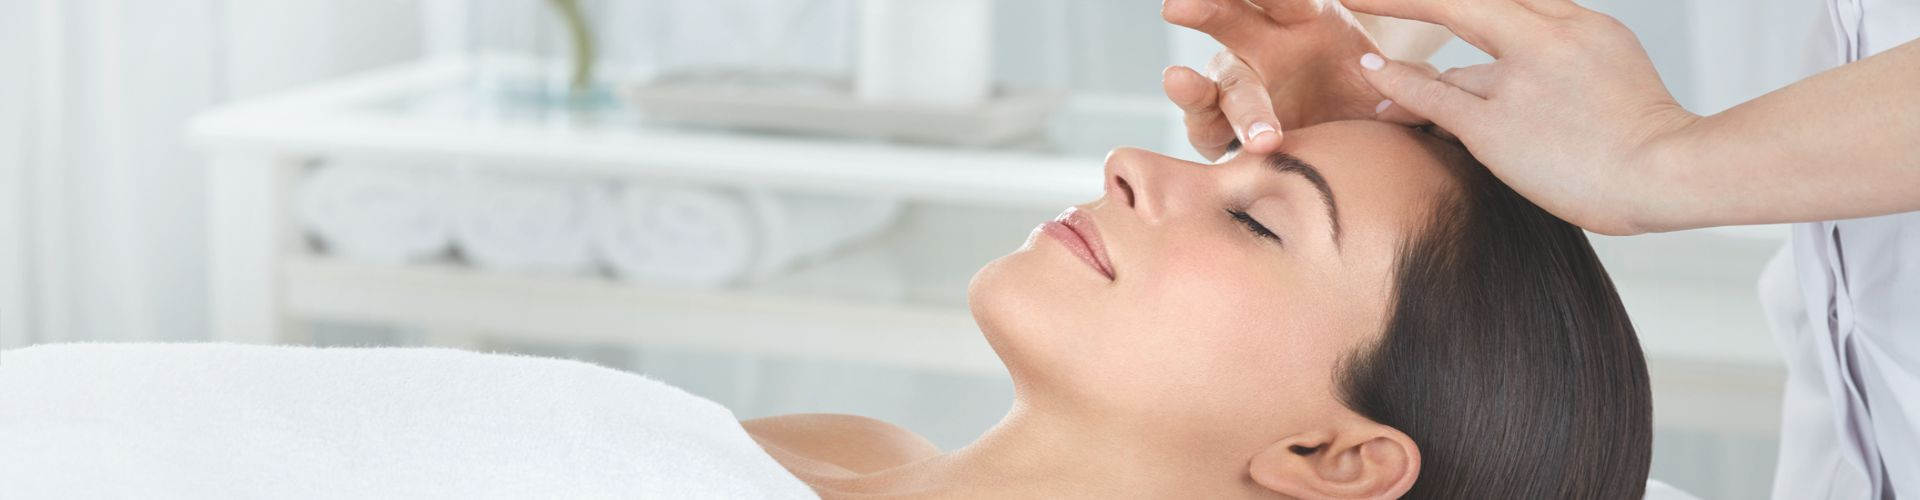 Elemis Facials with clinically proven anti-wrinkle, radiance and resurfacing